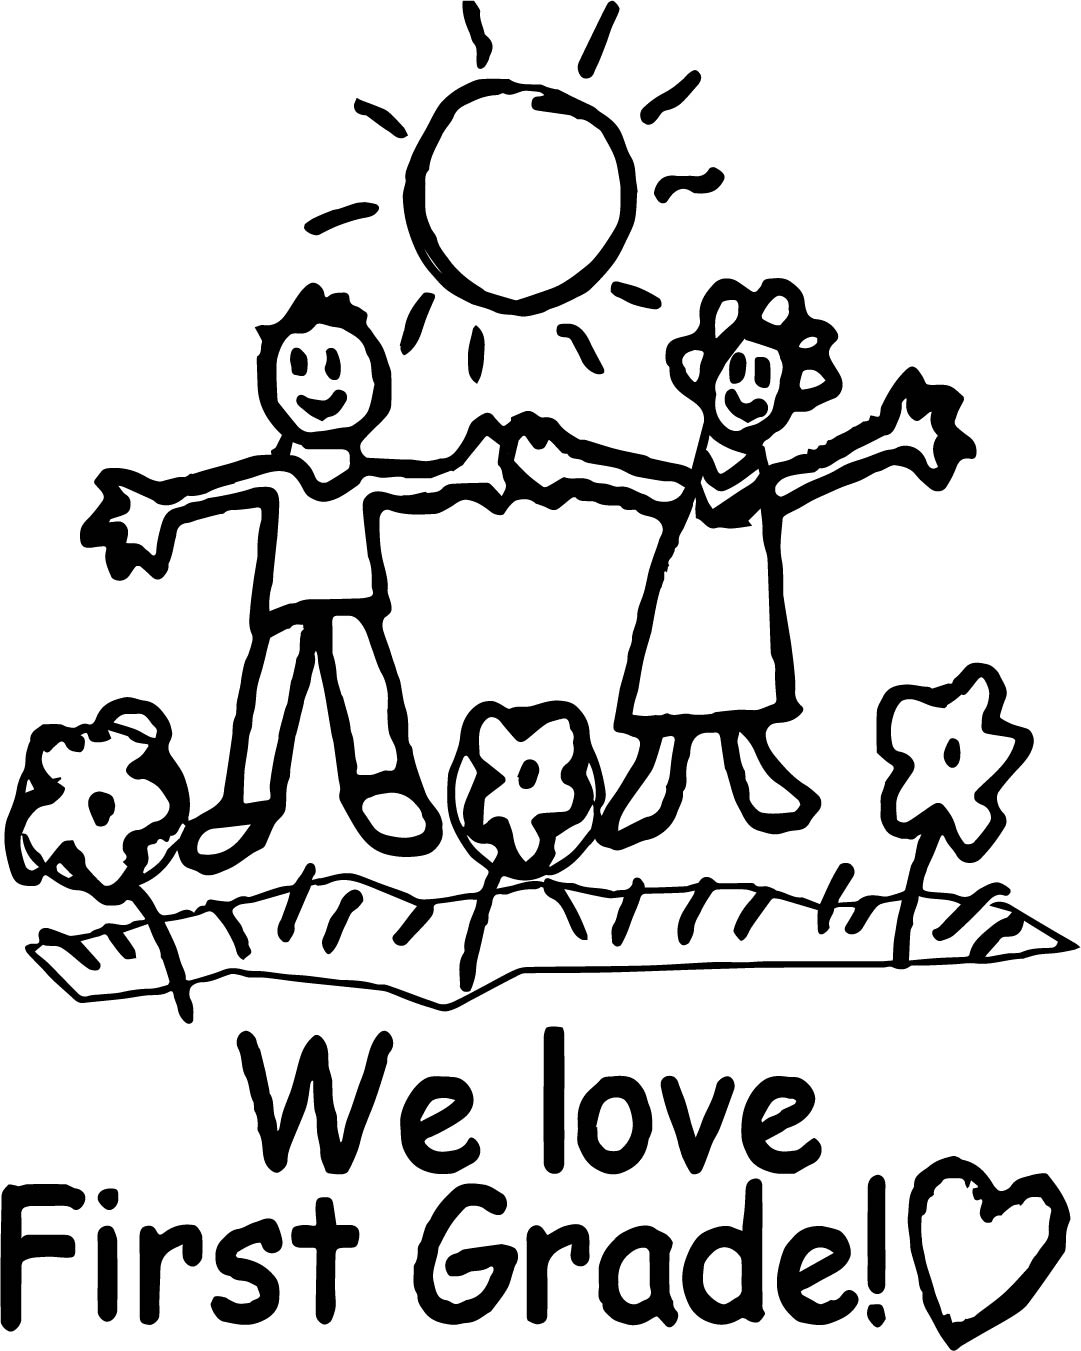 1st grade coloring pages welcome to first grade coloring page coloring pages pages coloring 1st grade